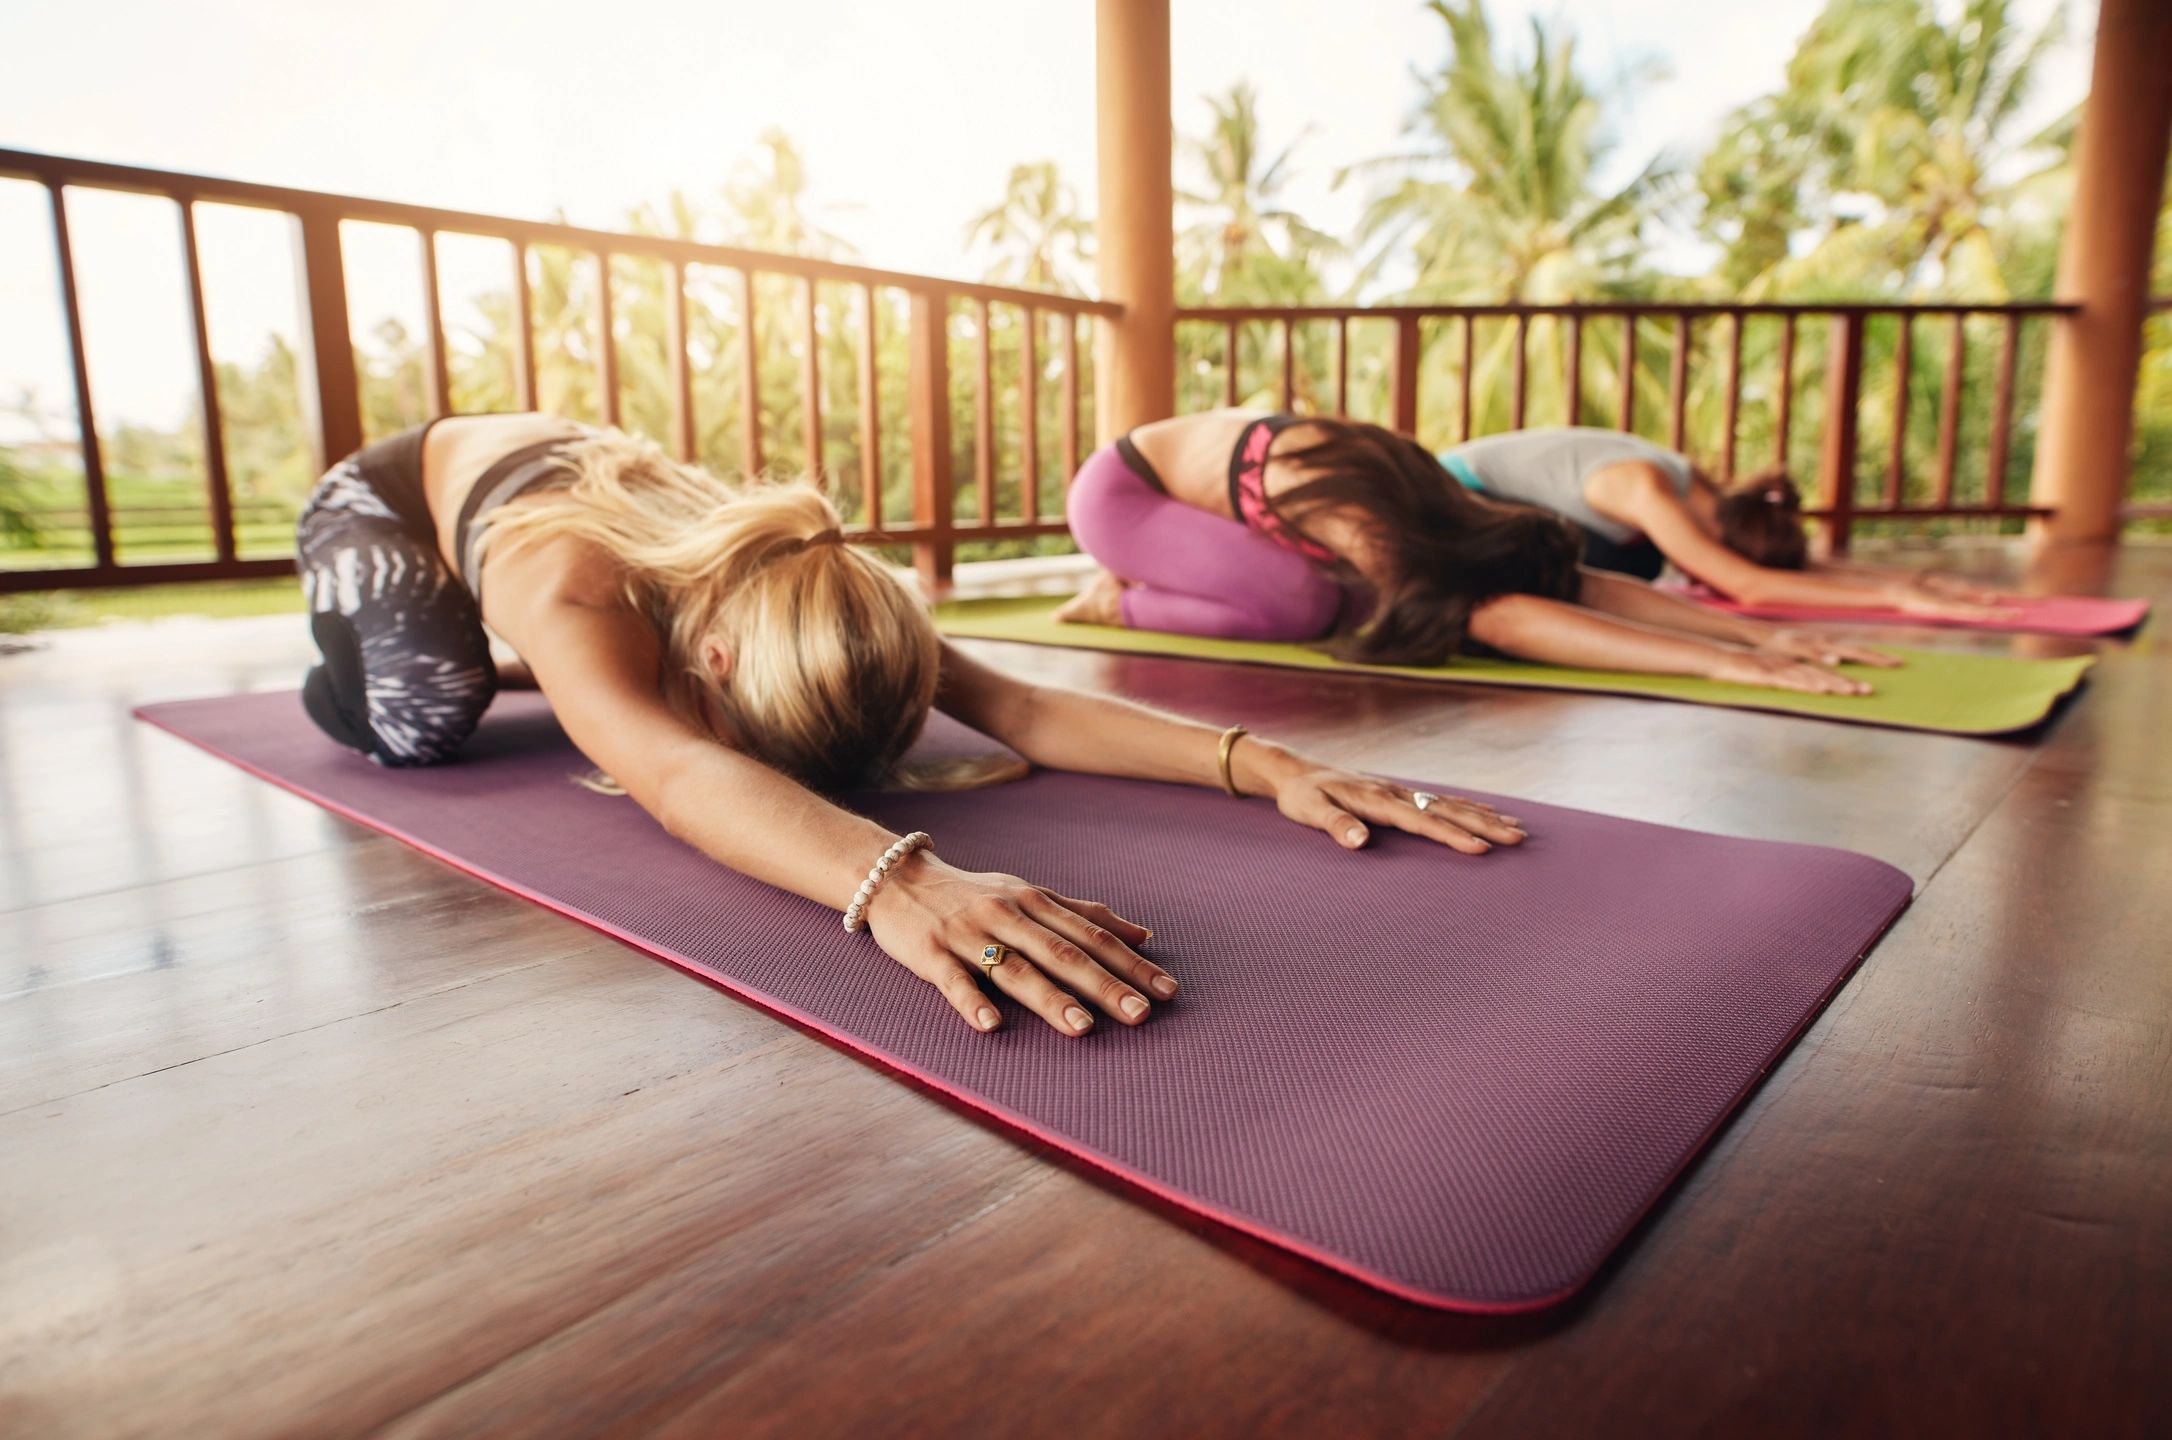 Maximizing your Mobility while at Home